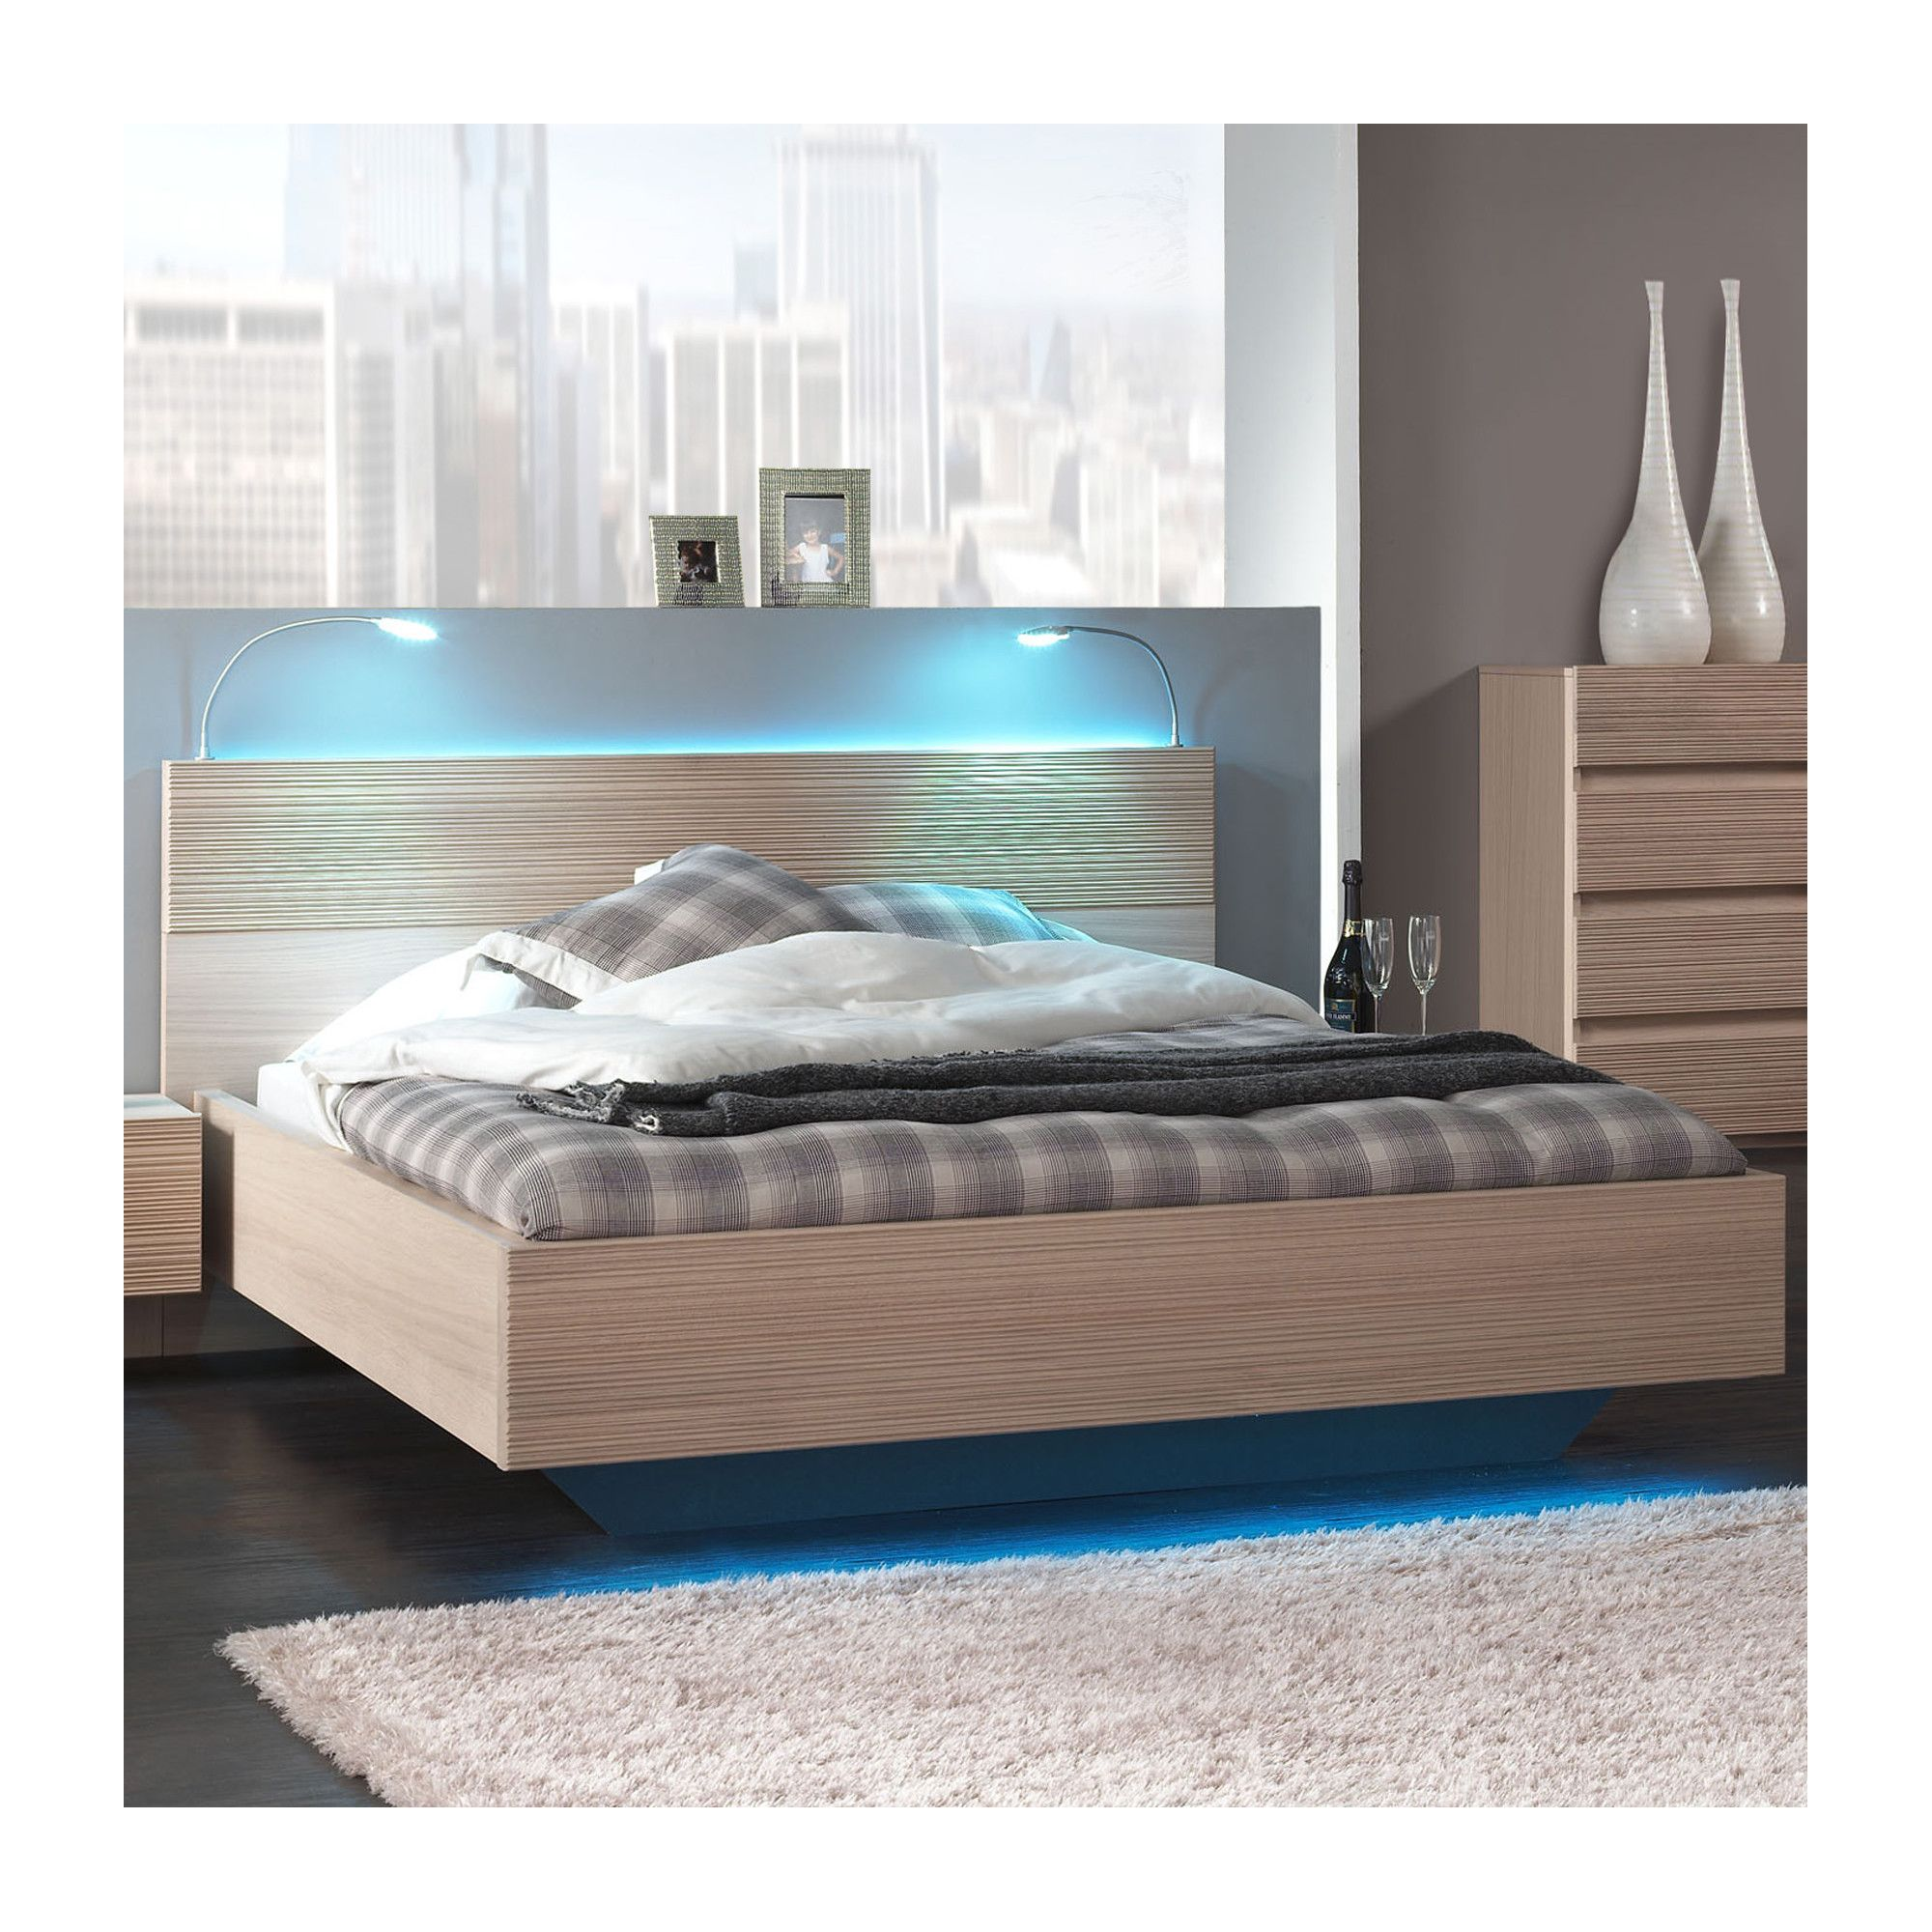 Sleepline Diva Bed - European Double - White Mat Lacquered at Tesco Direct